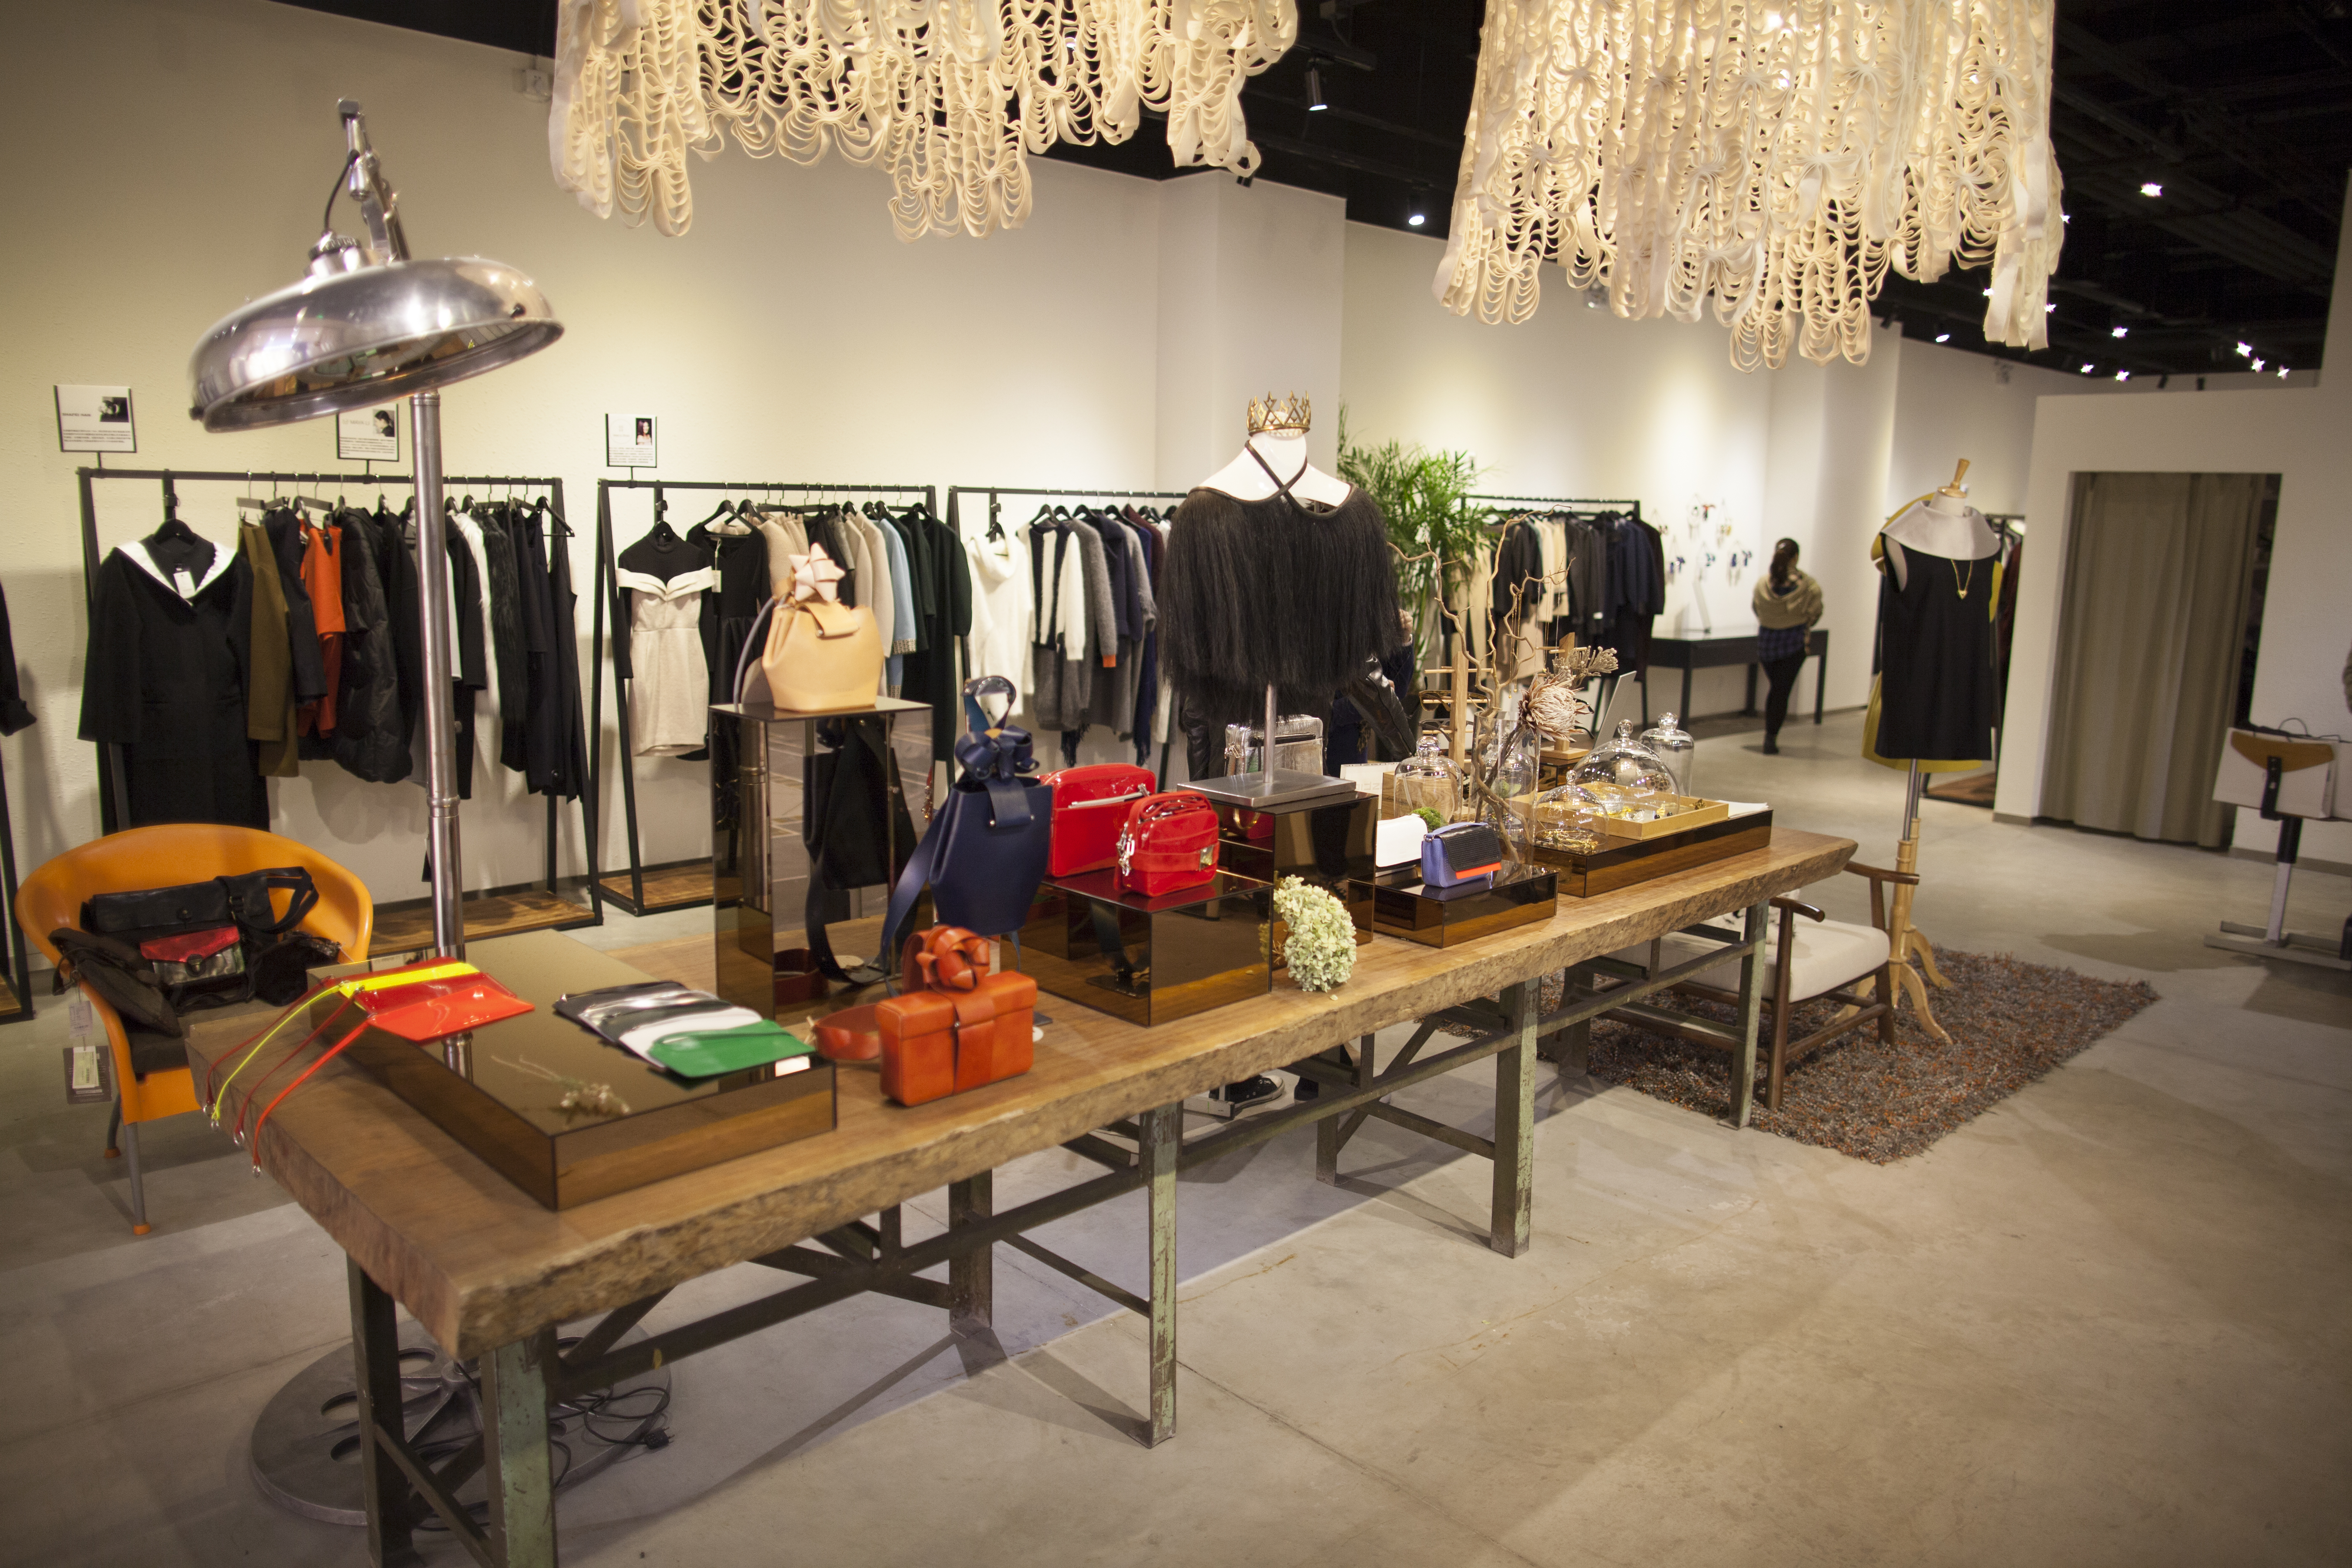 The Fei Space store in Beijing